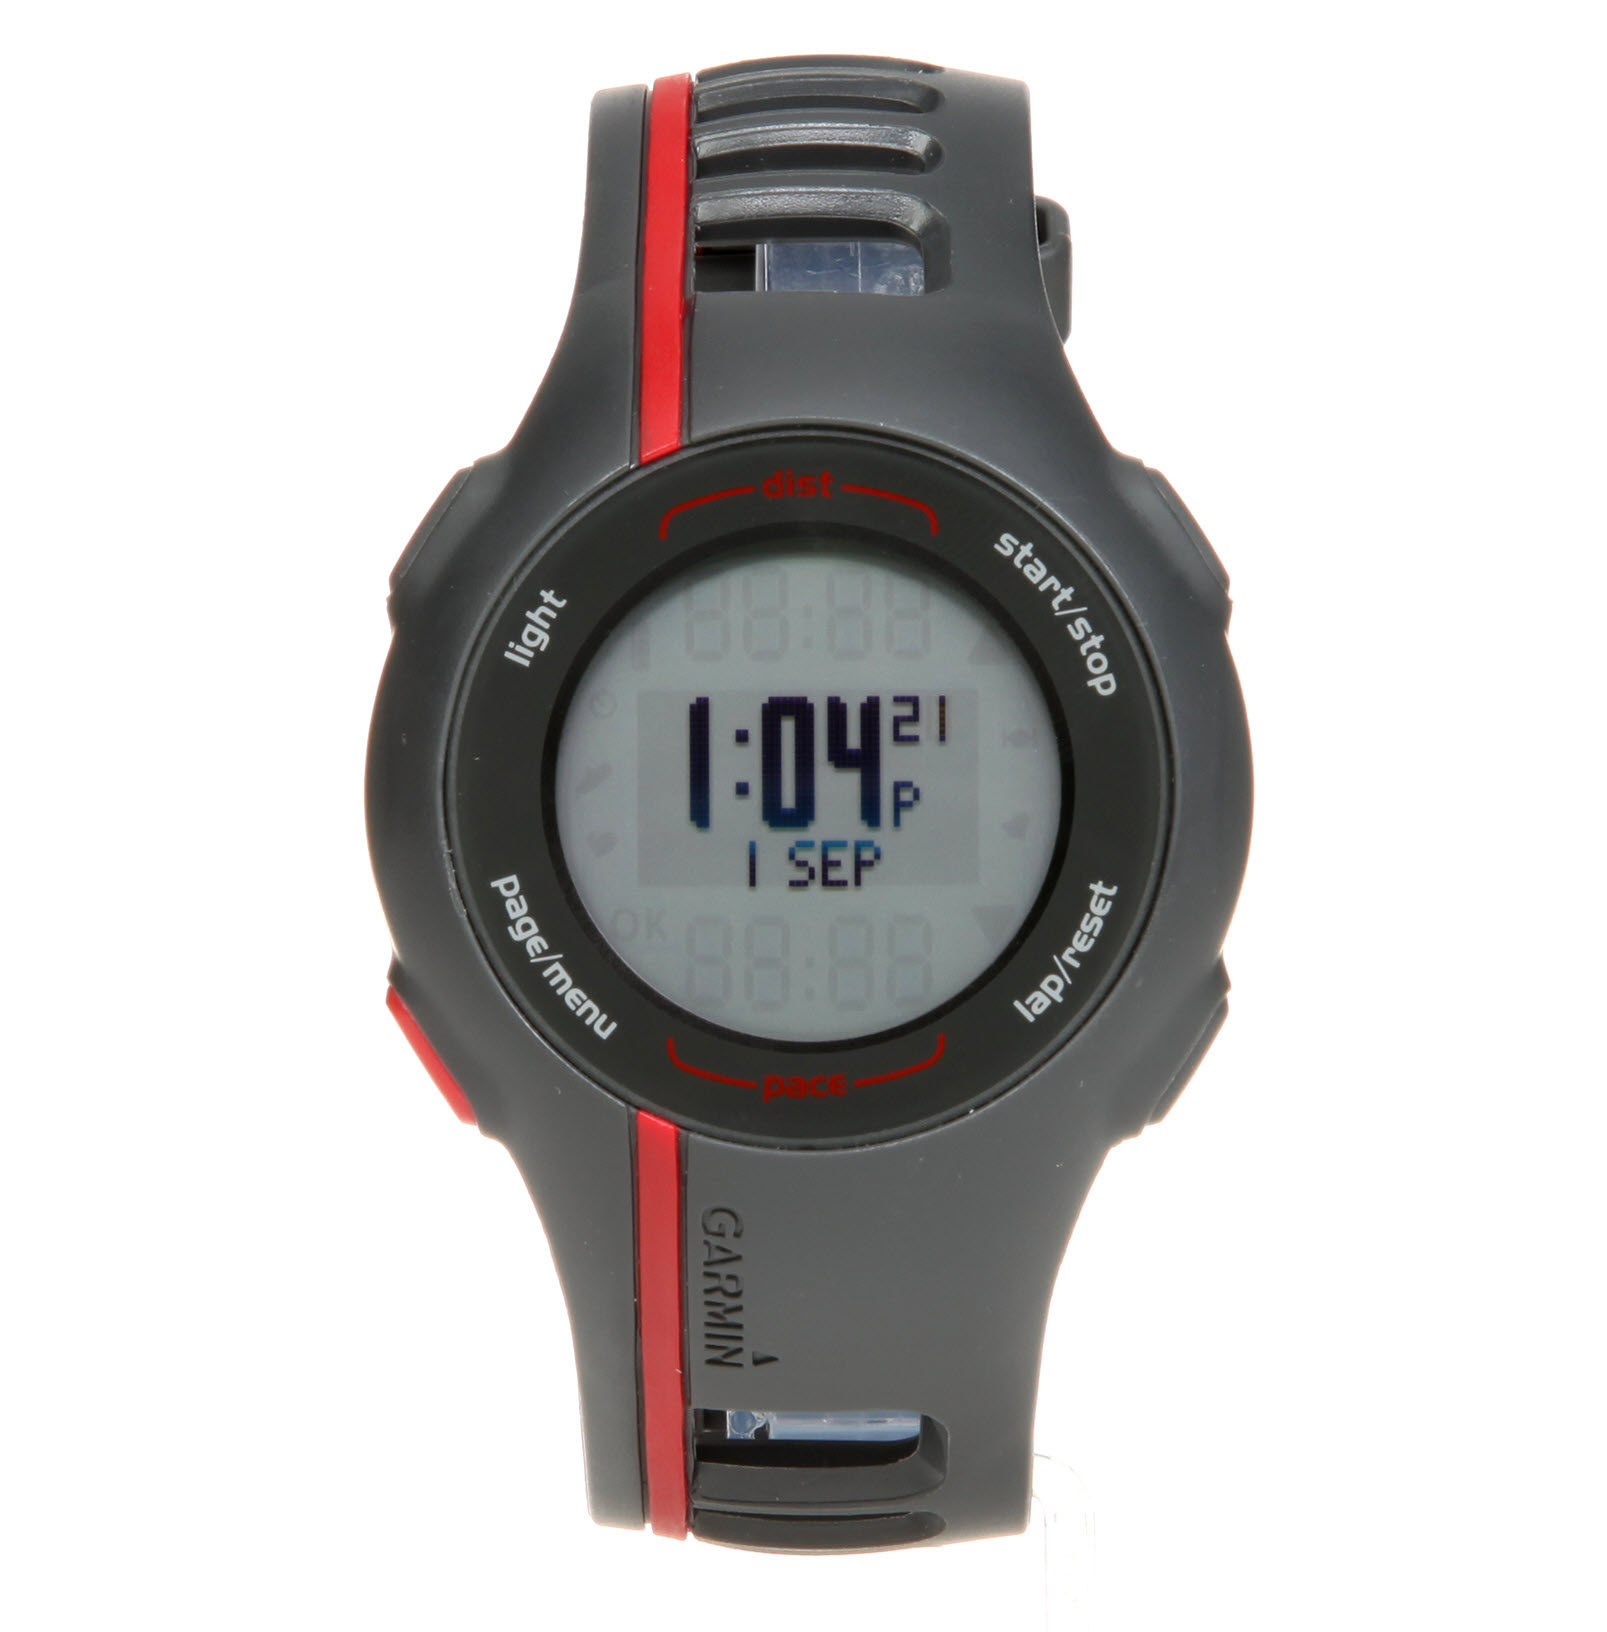 Garmin Forerunner 110 GPS Sports Watch black Charger included